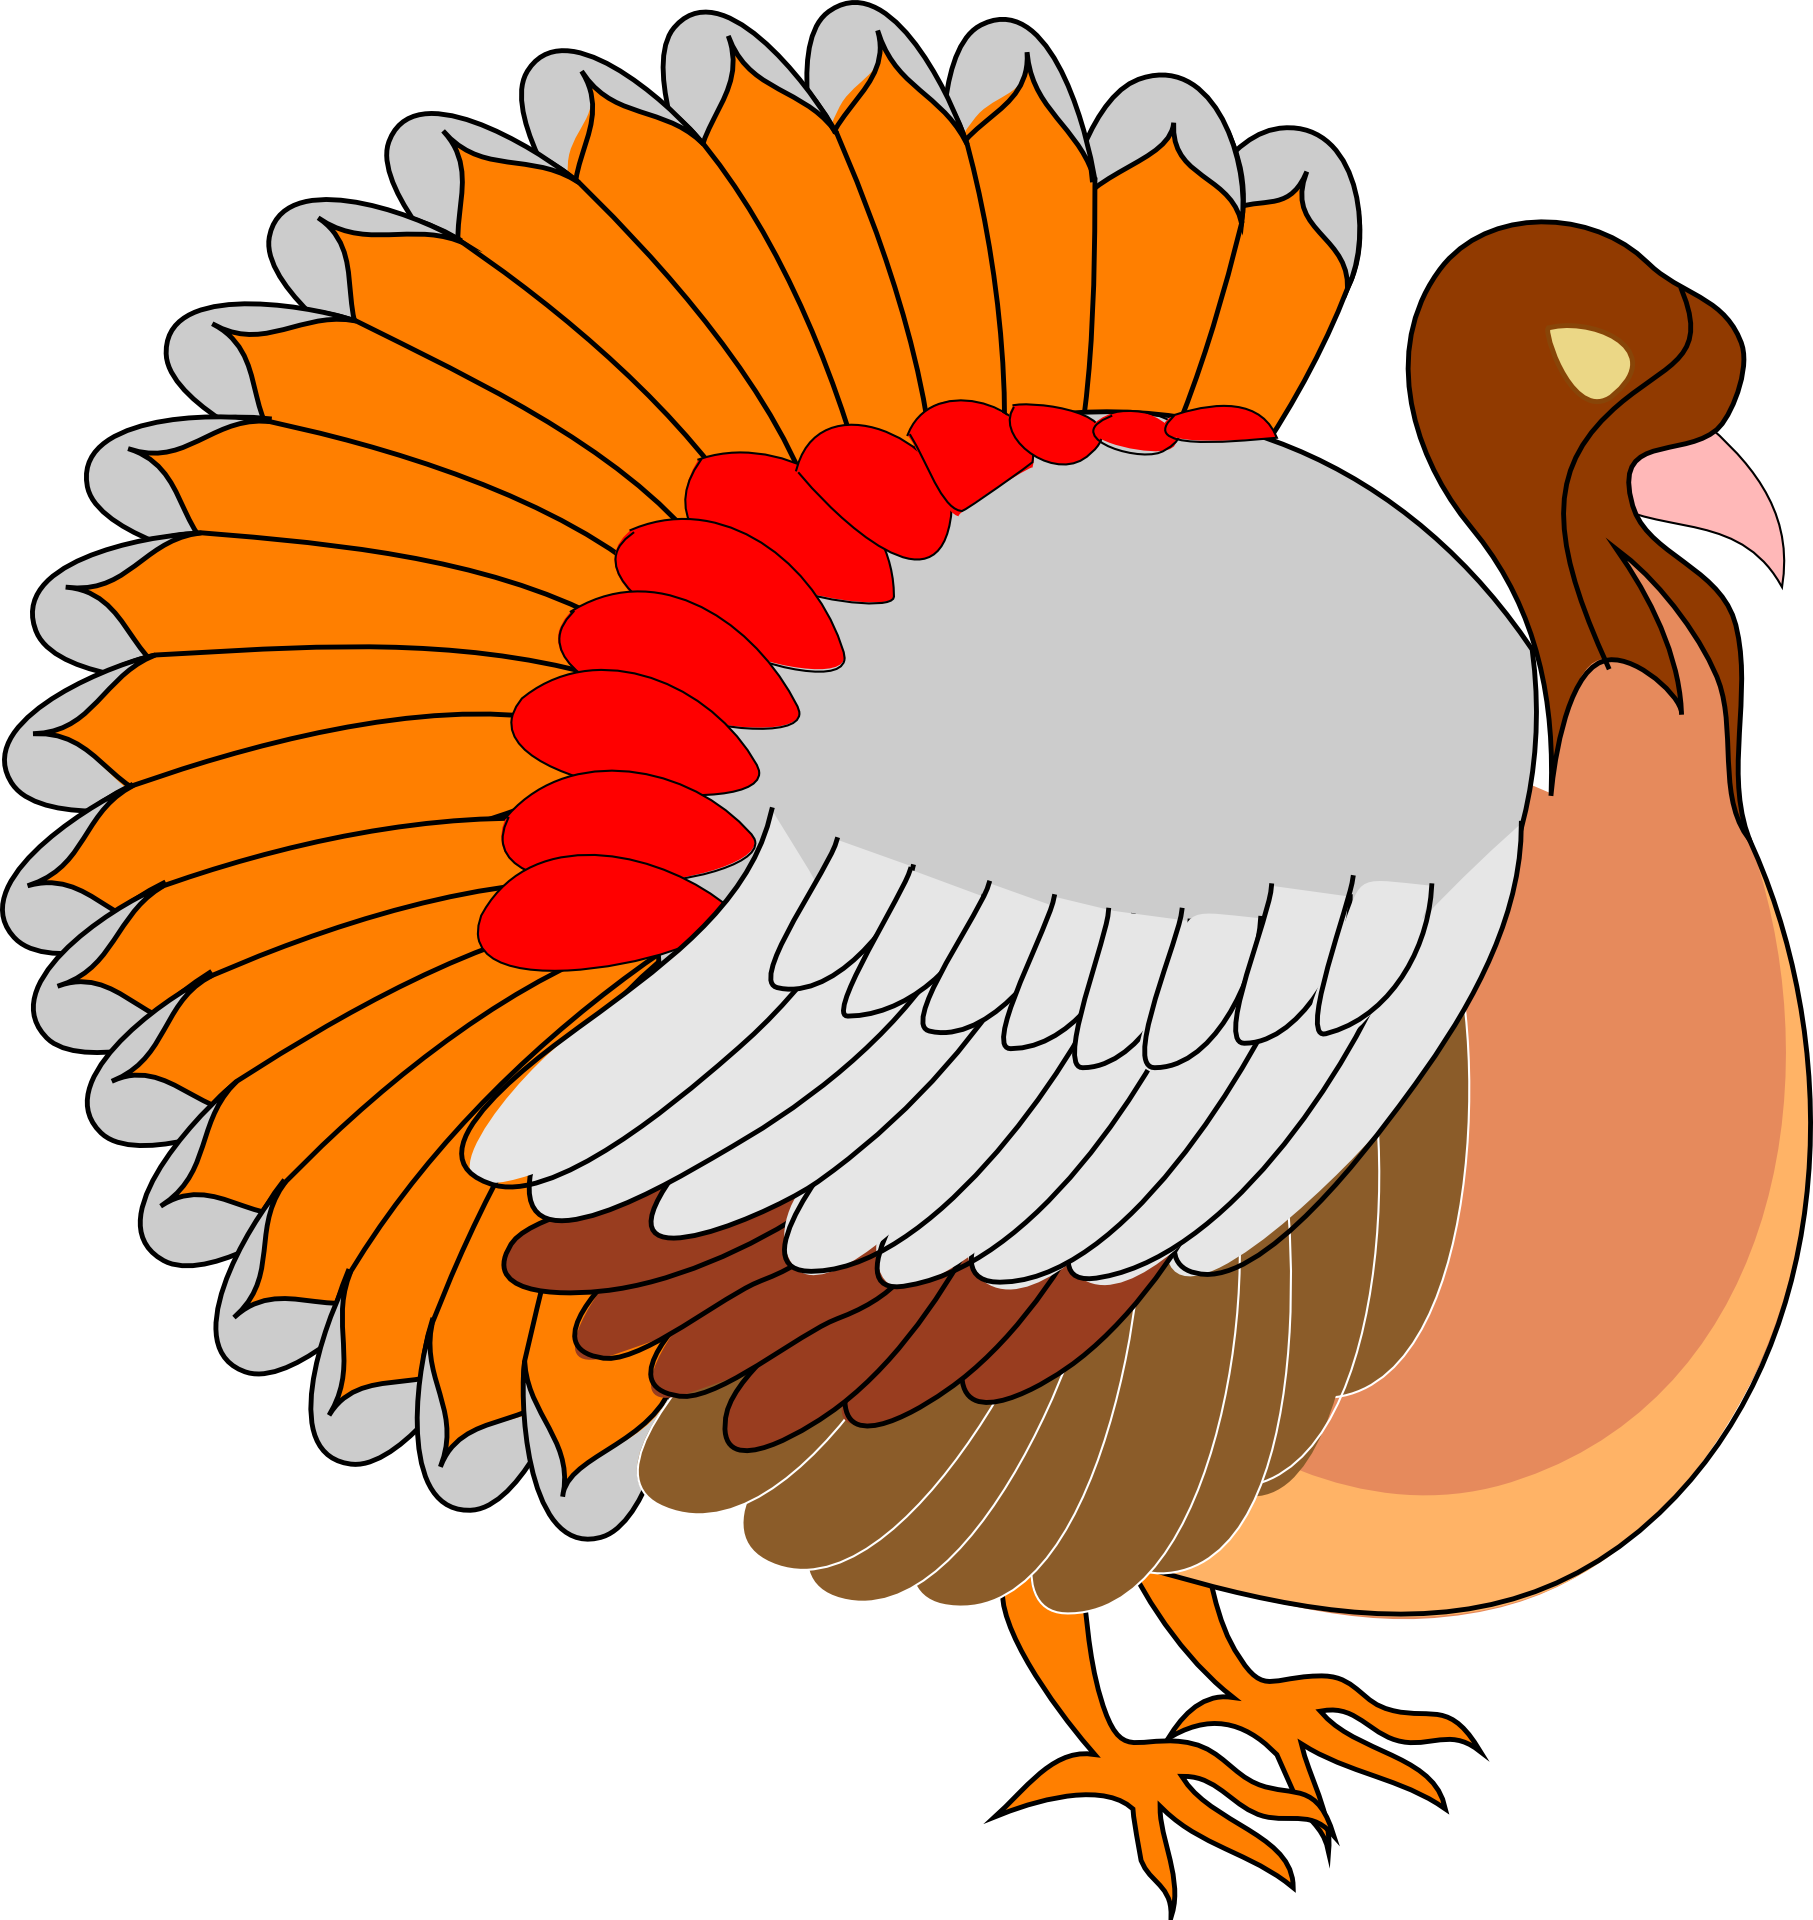 Clipart,picture of turkey bird for thanksgiving free image.